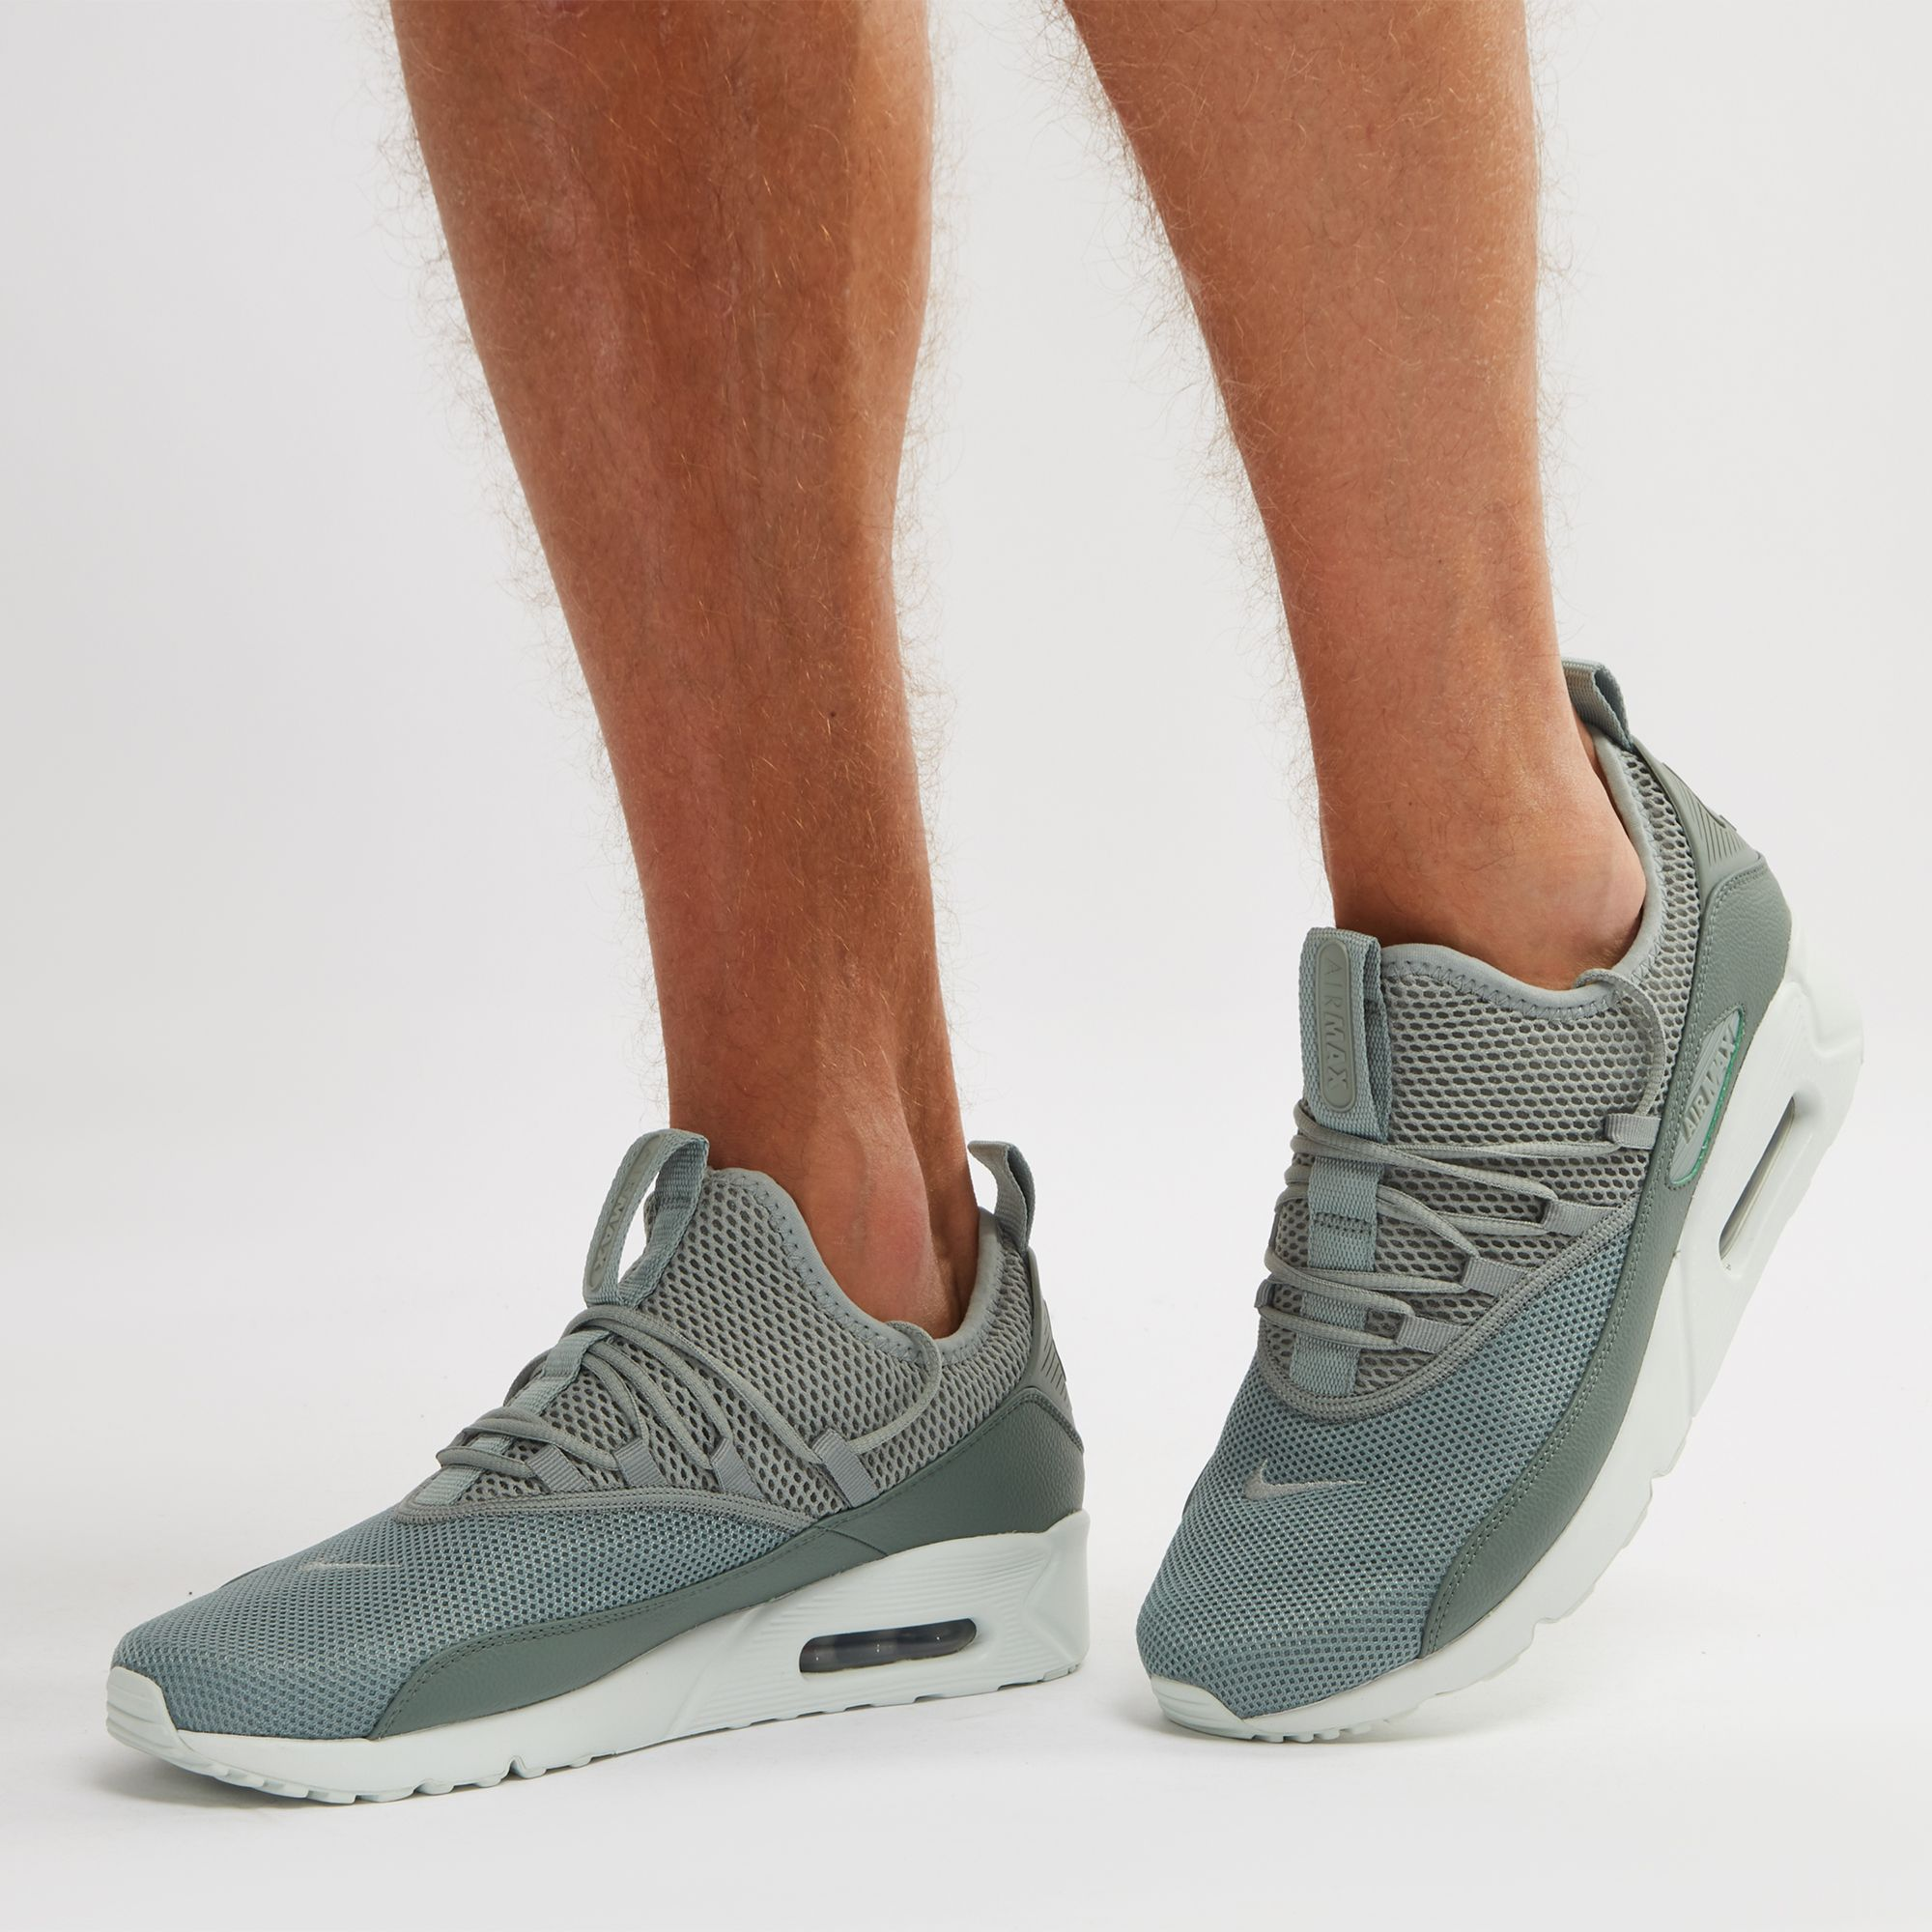 Nike Air Max 90 EZ Shoe | Sneakers | Shoes | Men's Sale